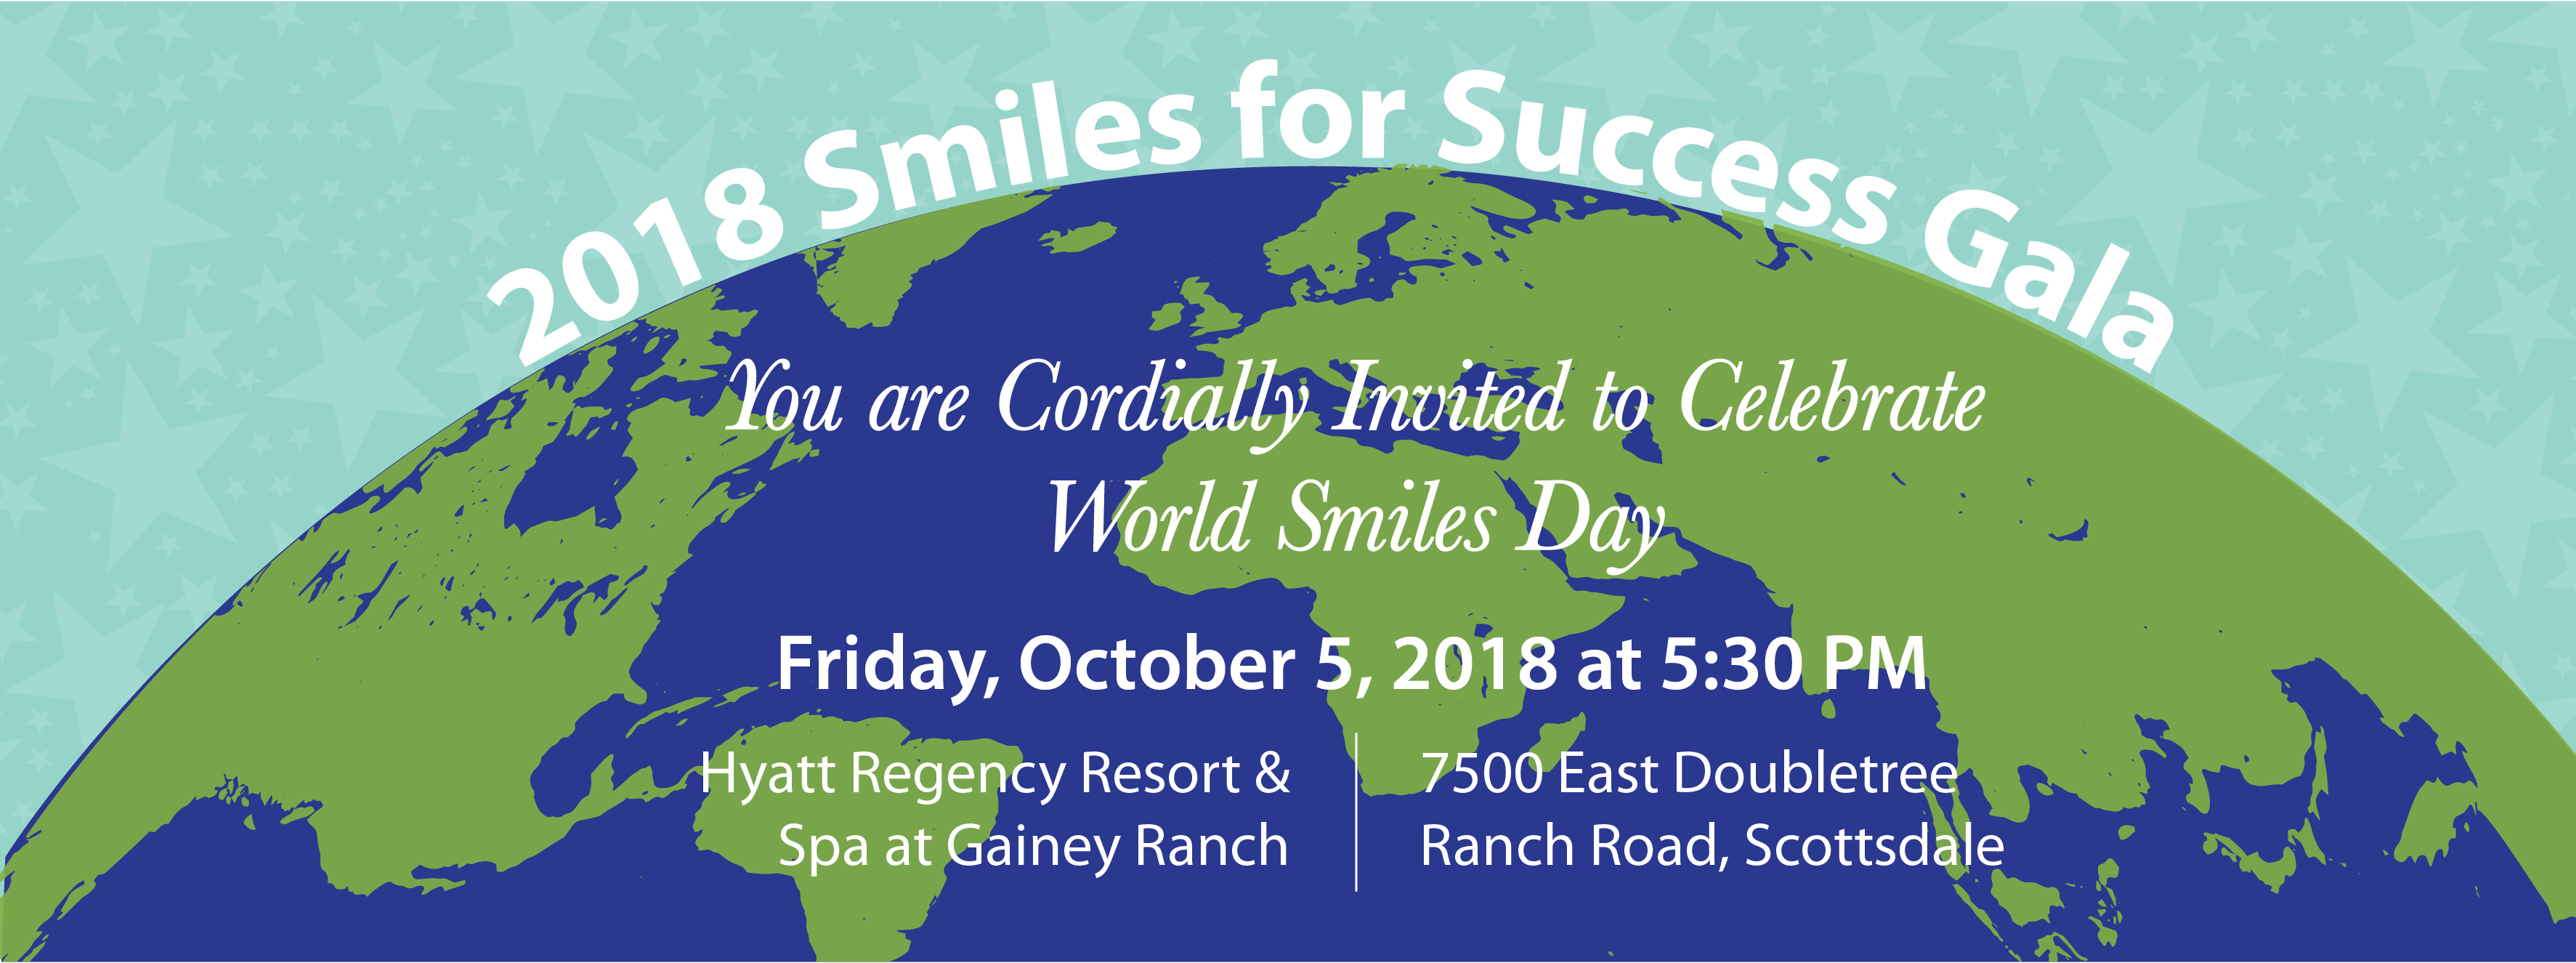 2018 Smiles for Success Gala